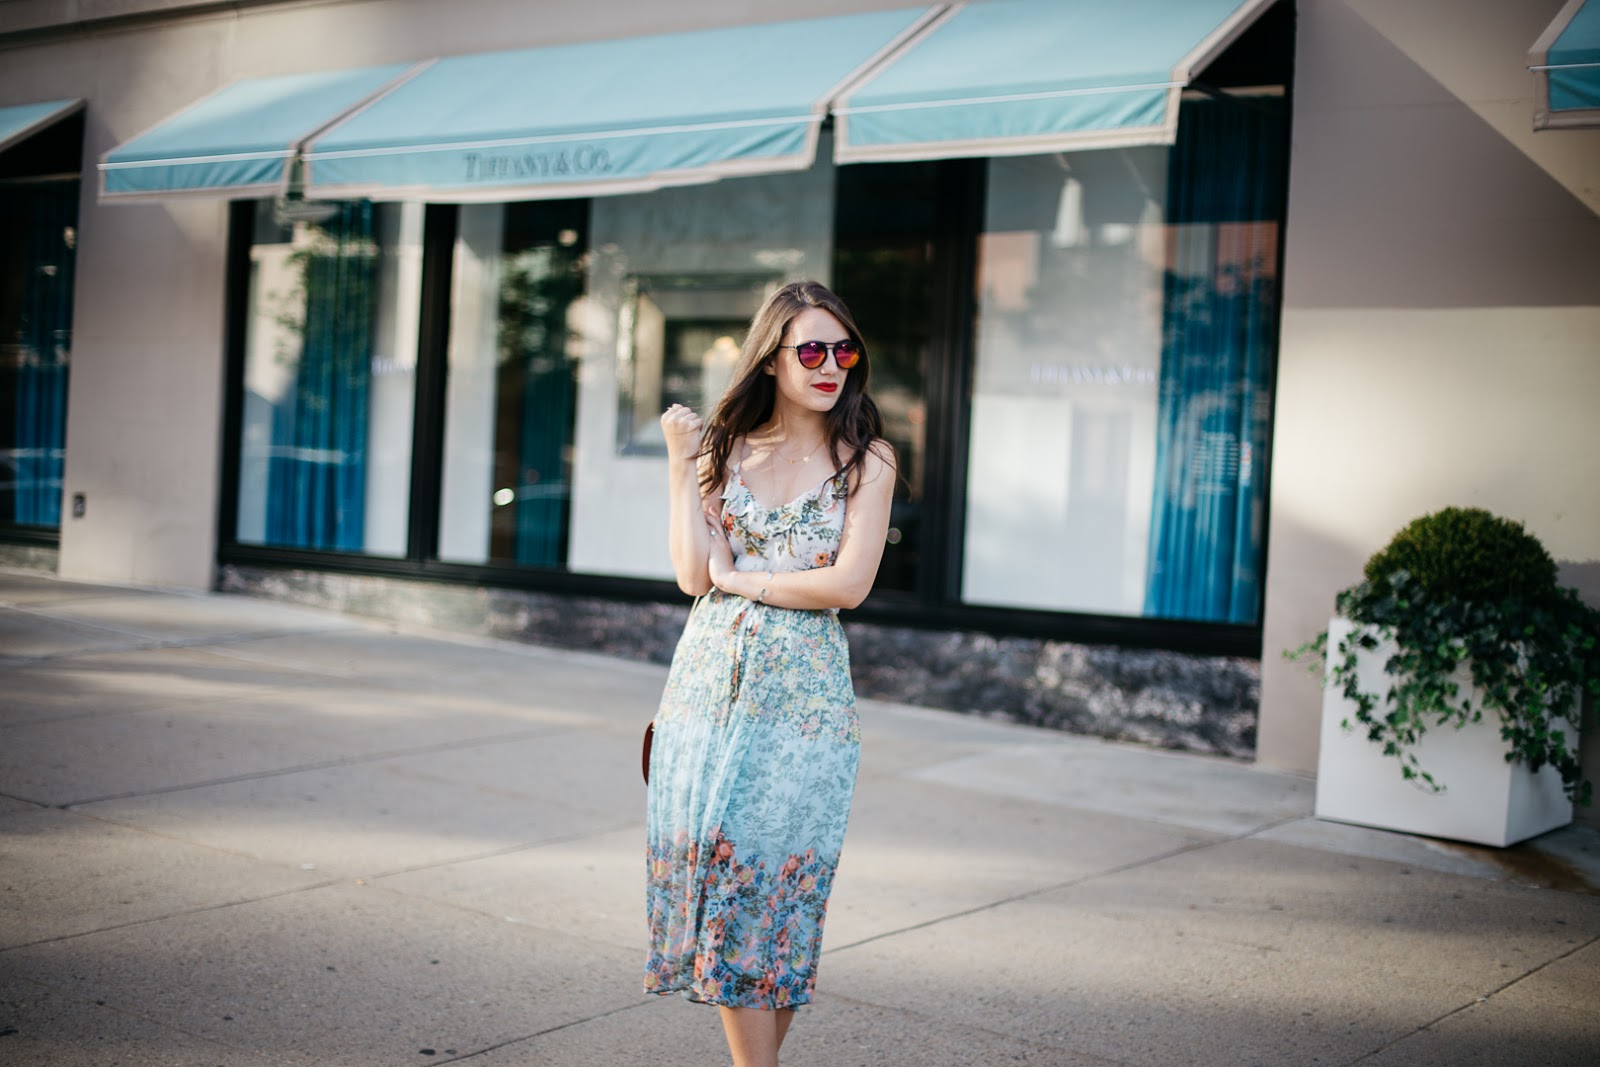 Snap up this pretty blue floral dress on sale before it's too late